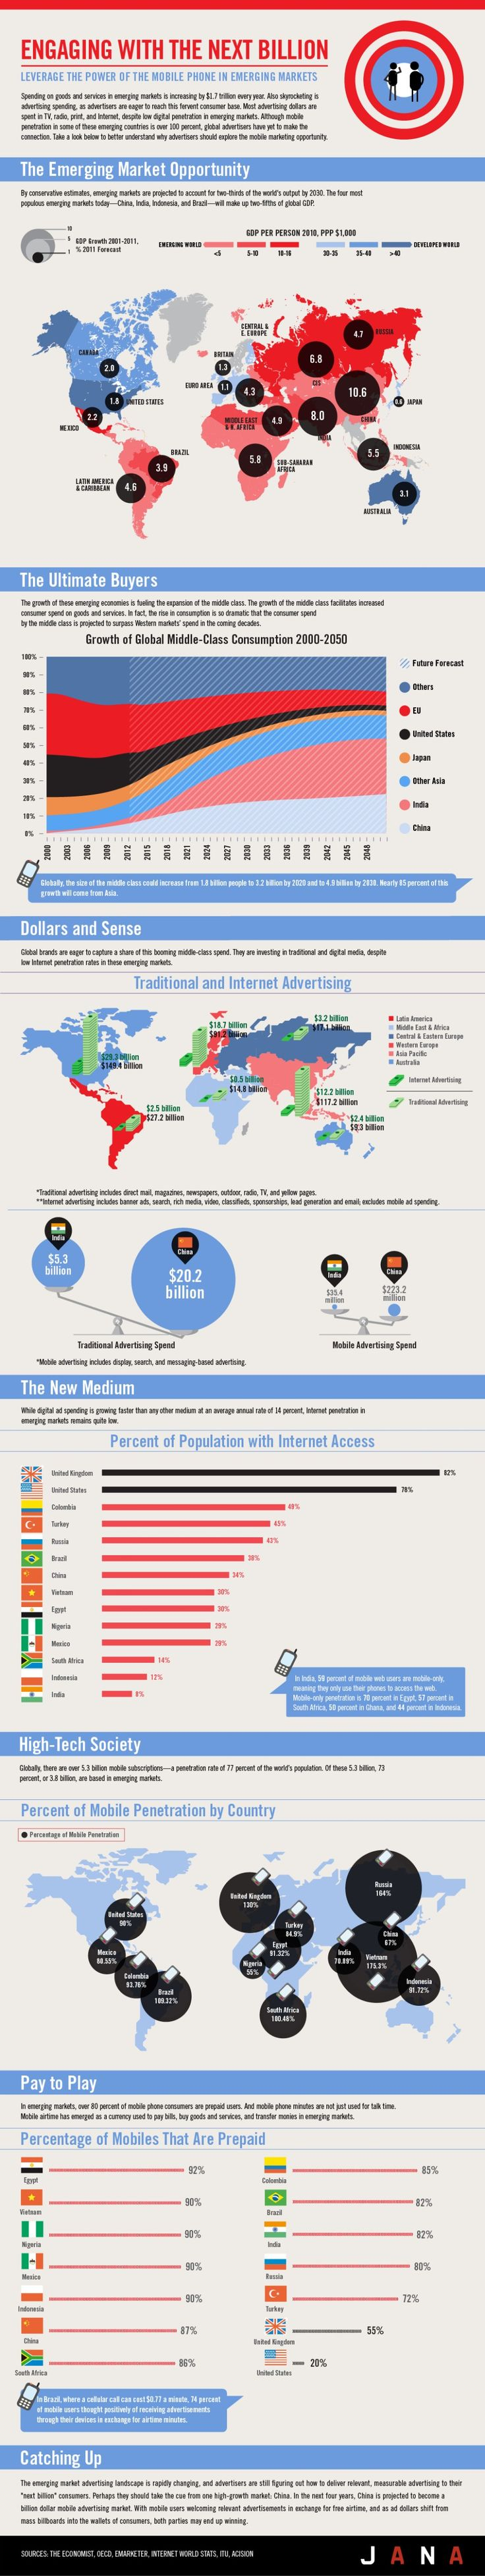 Mobile growth in emerging markets